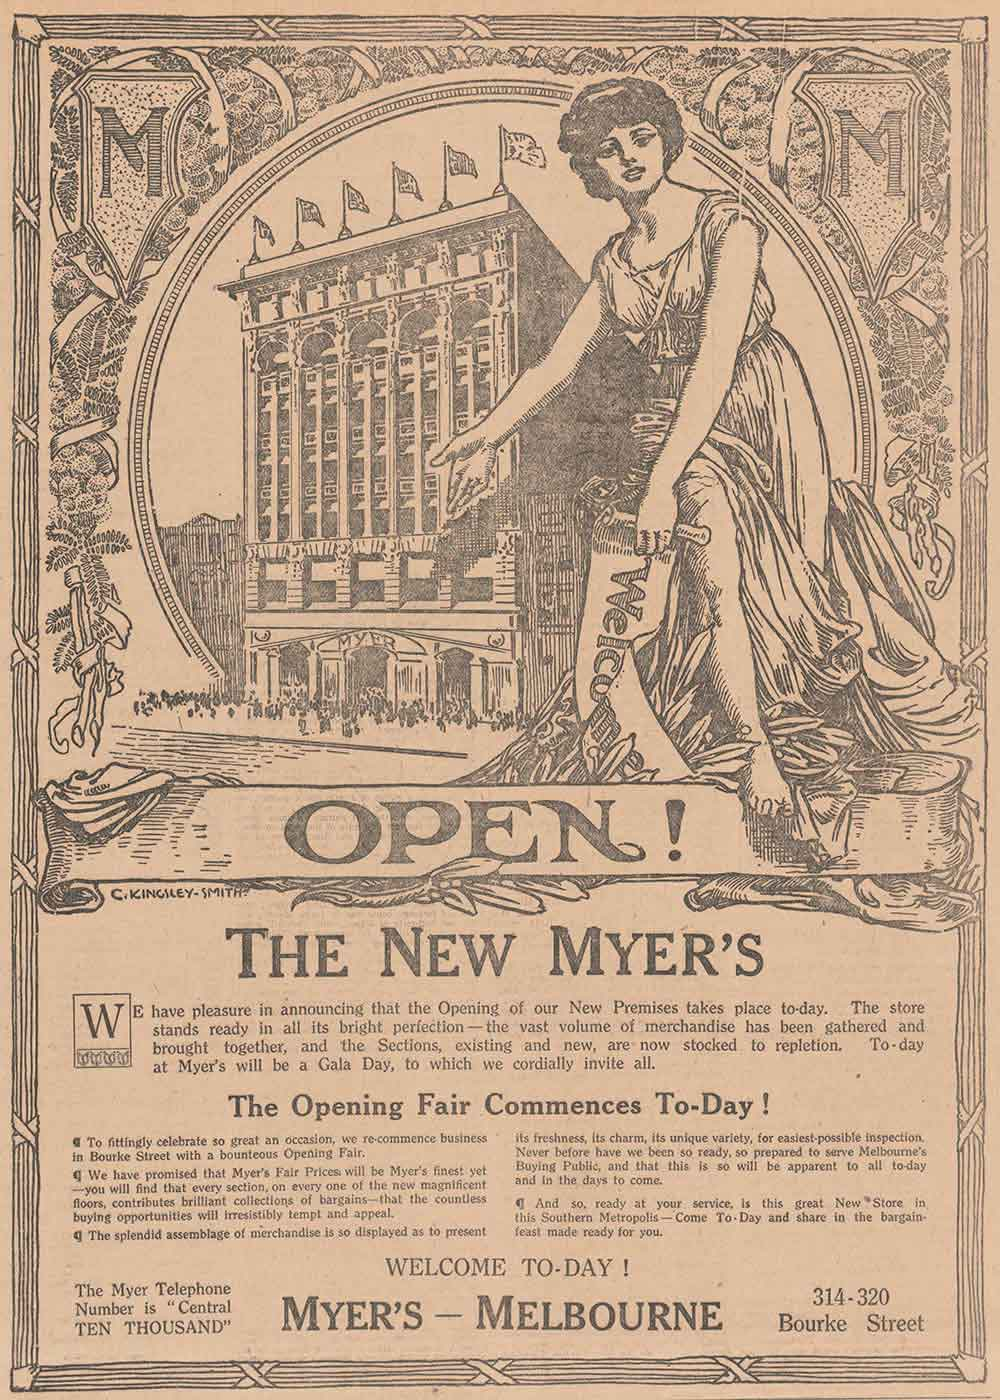 Ad for the opening of a store featuring the text 'OPEN! THE NEW MYER'S'. - click to view larger image